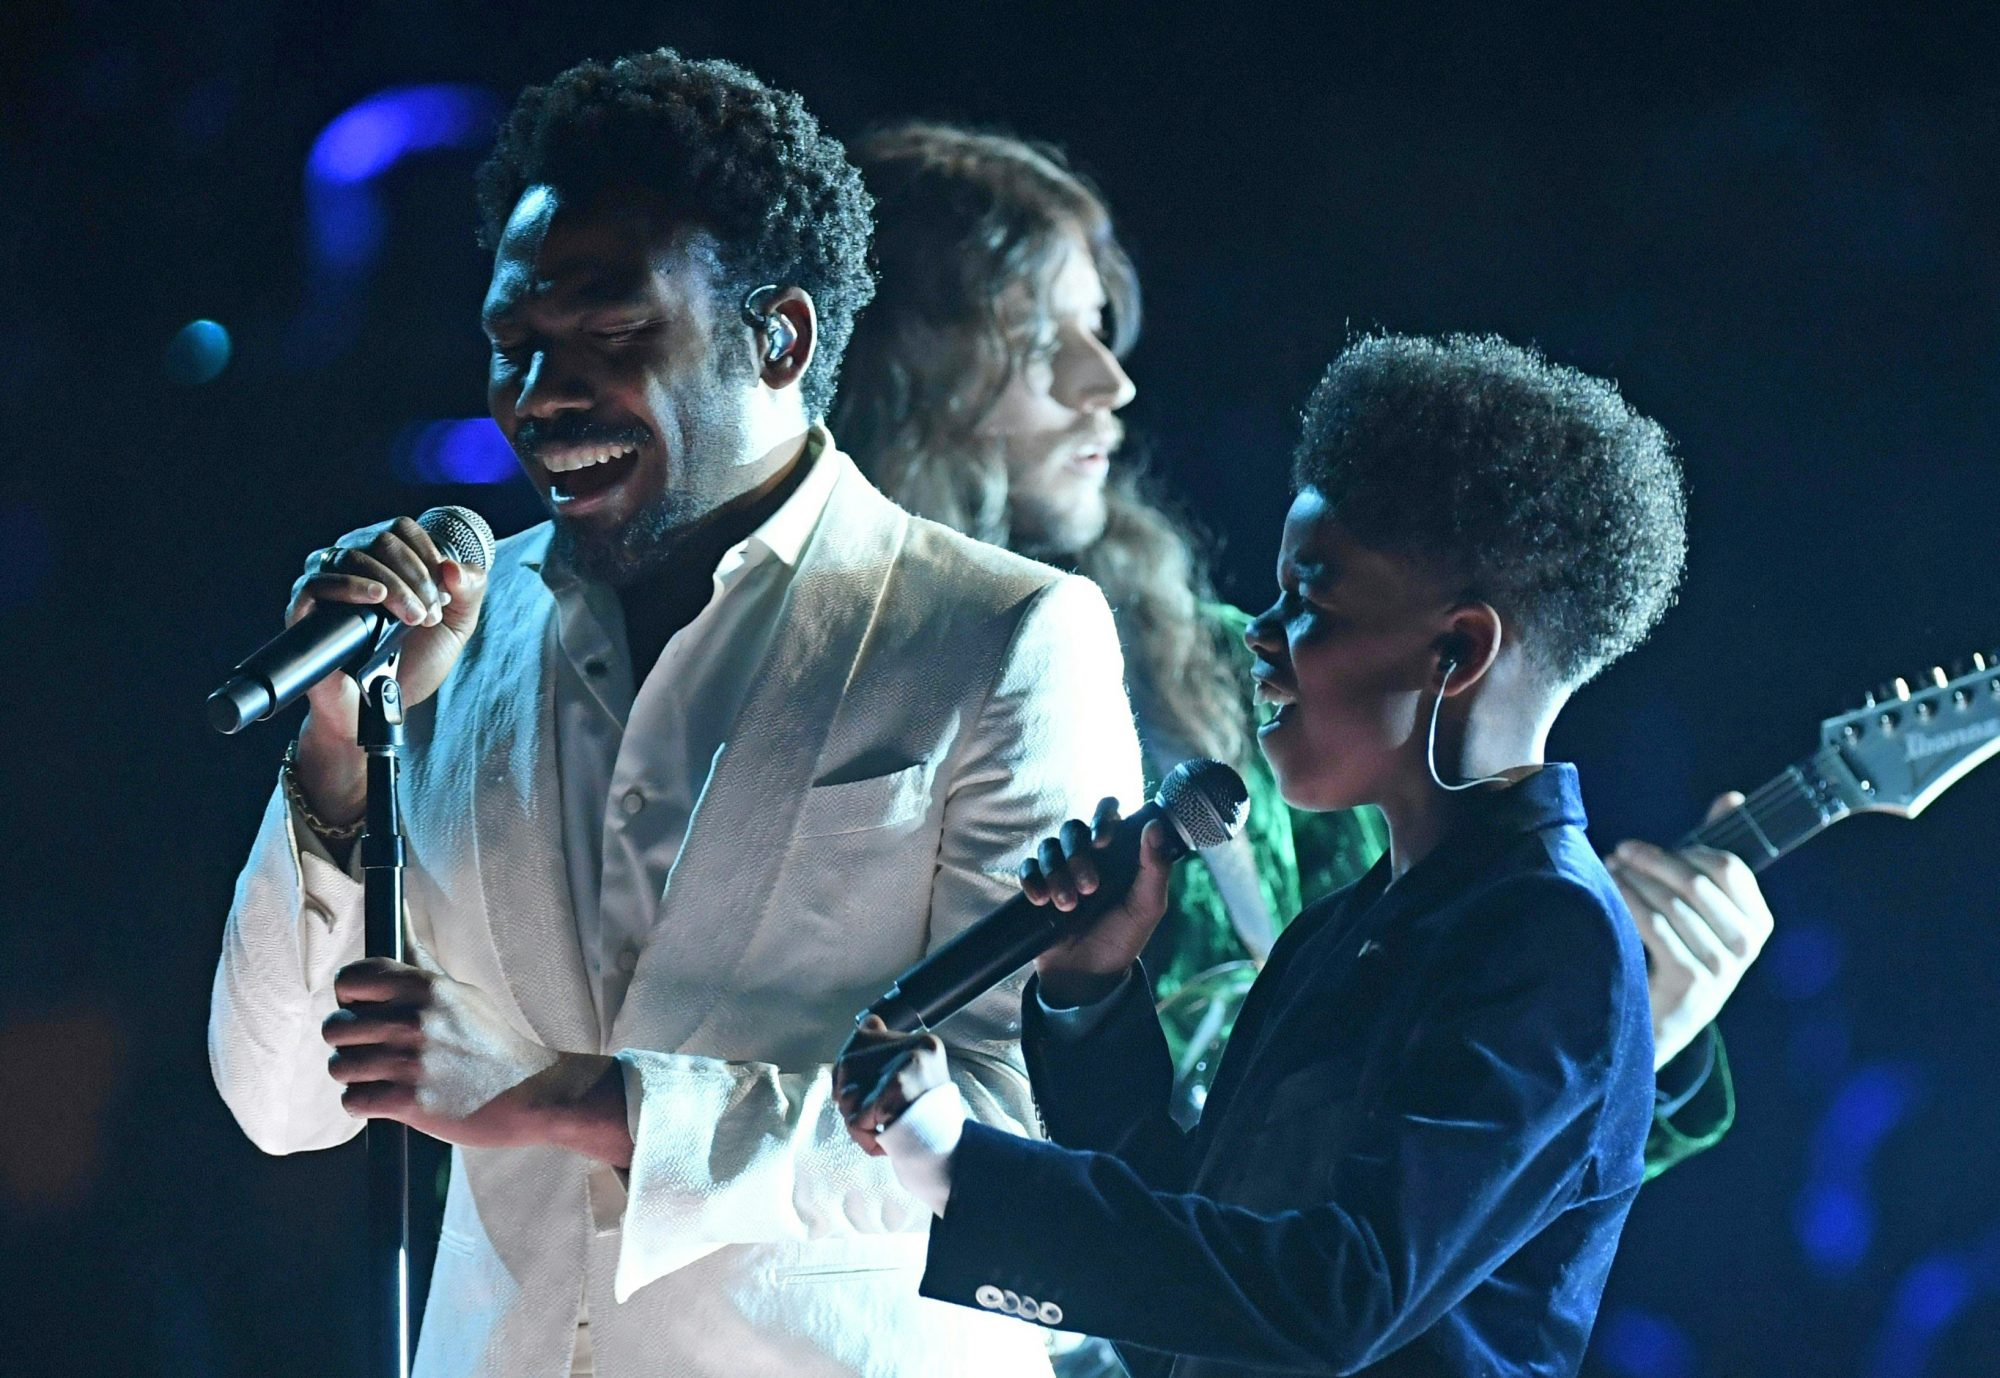 There's a <em>Lion King</em> Connection Between Childish Gambino and the Boy He Sang with at the Grammys